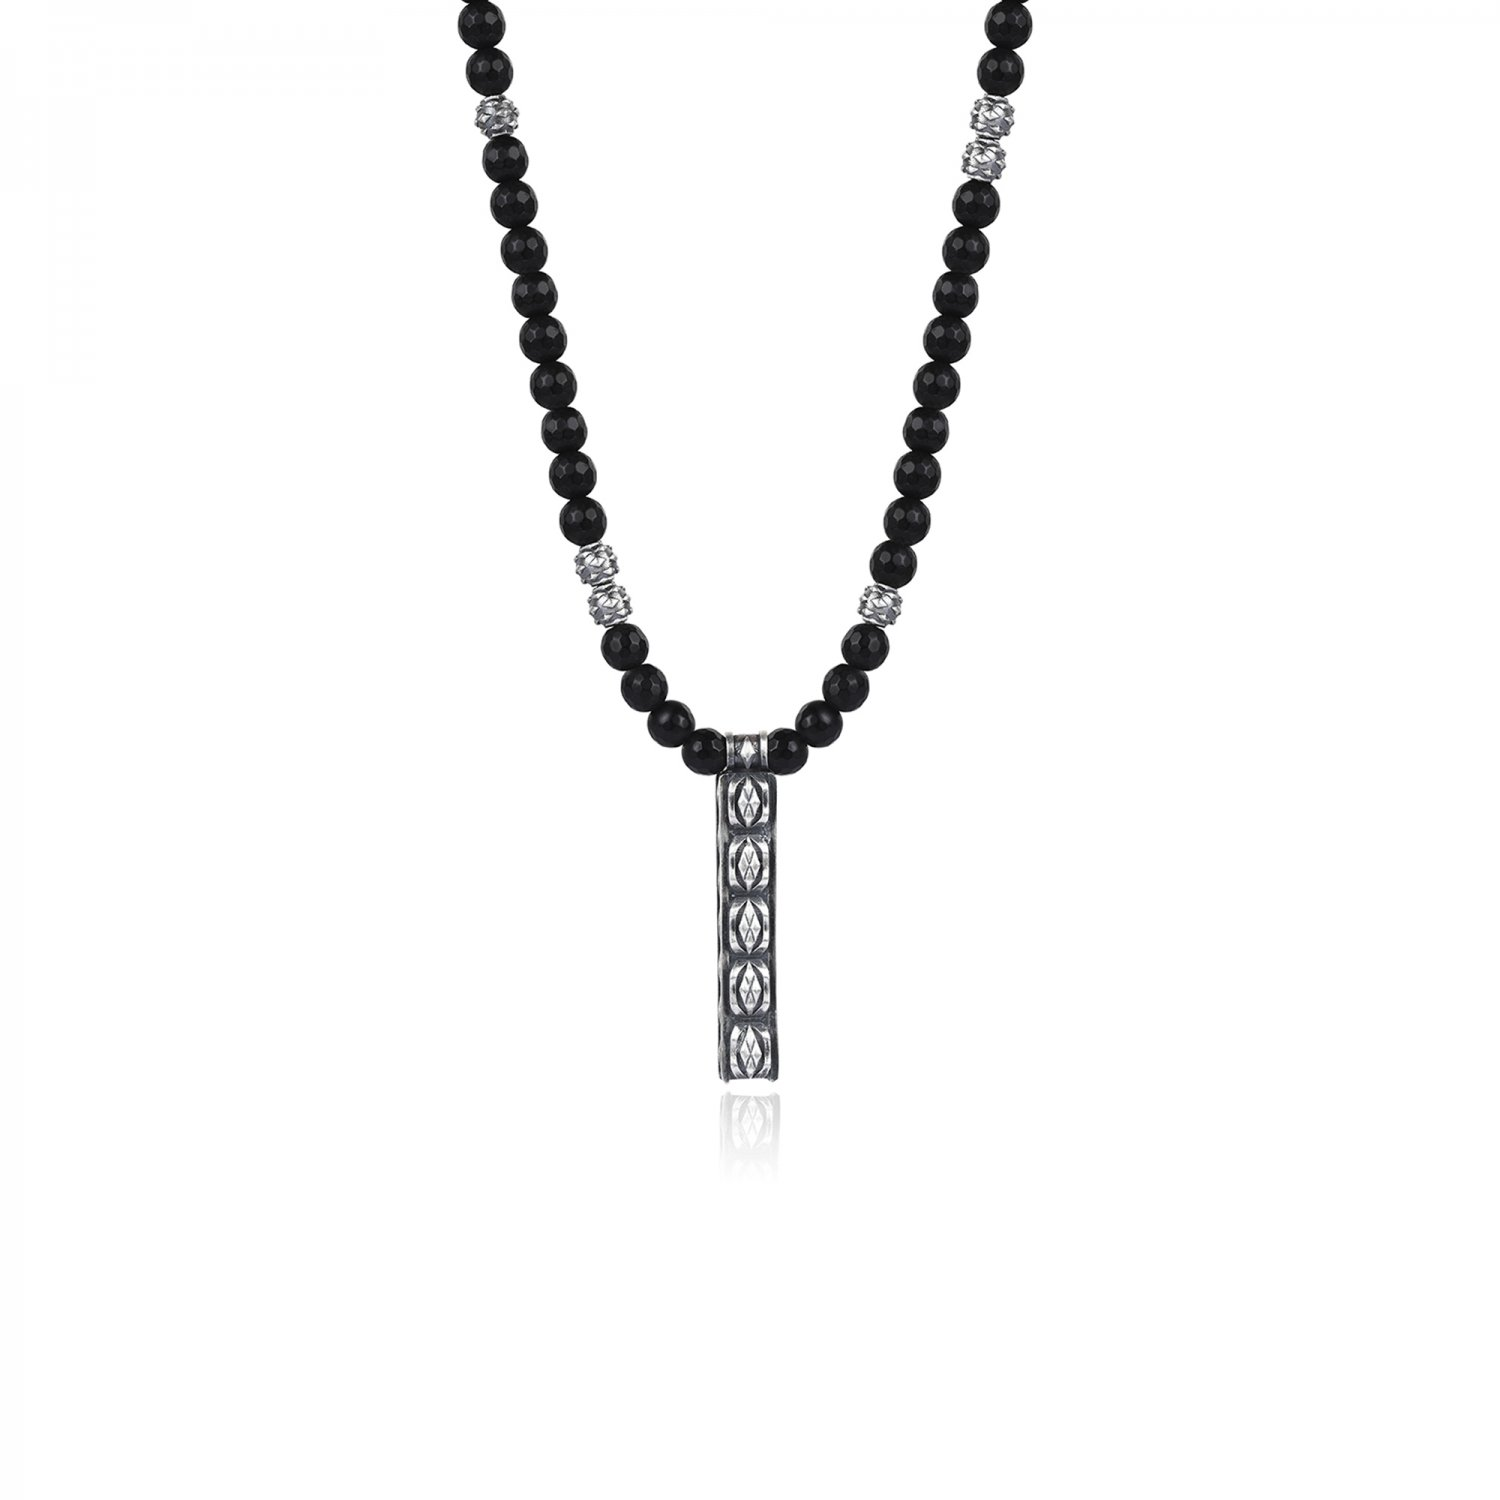 Oxidised Silver Serpi Faceted Black Onyx Bead Necklace